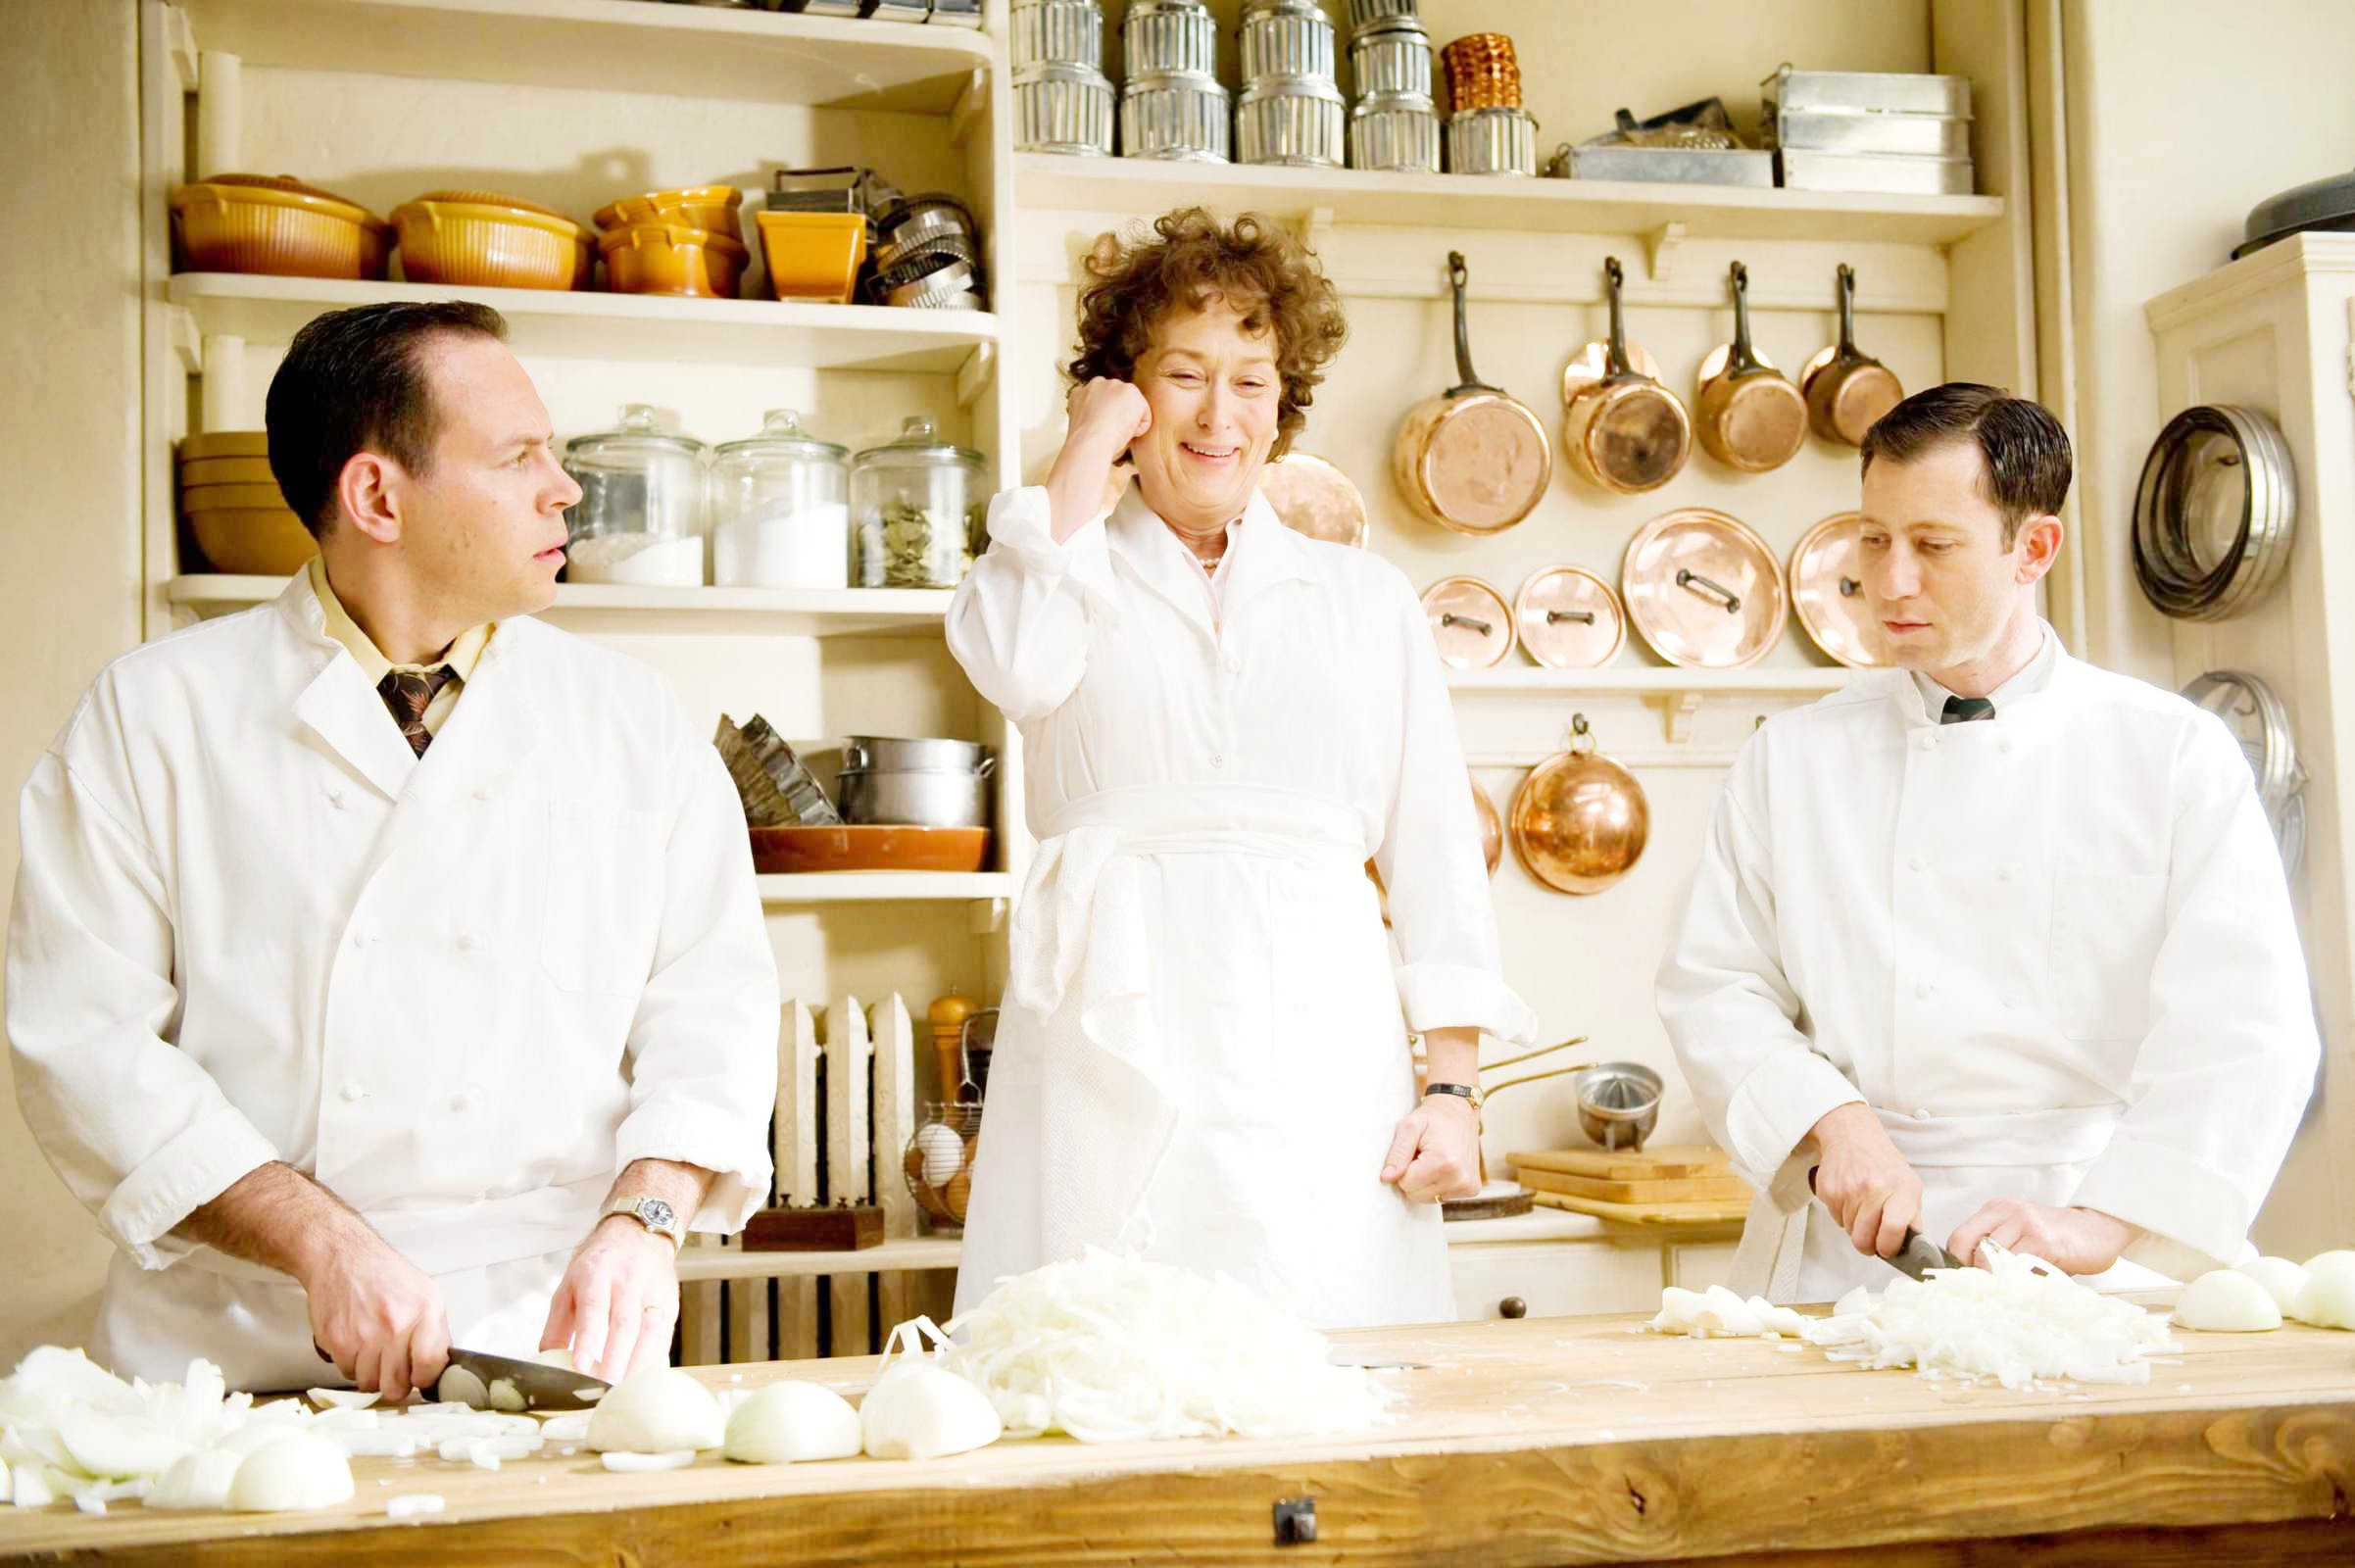 Julie i Julia film